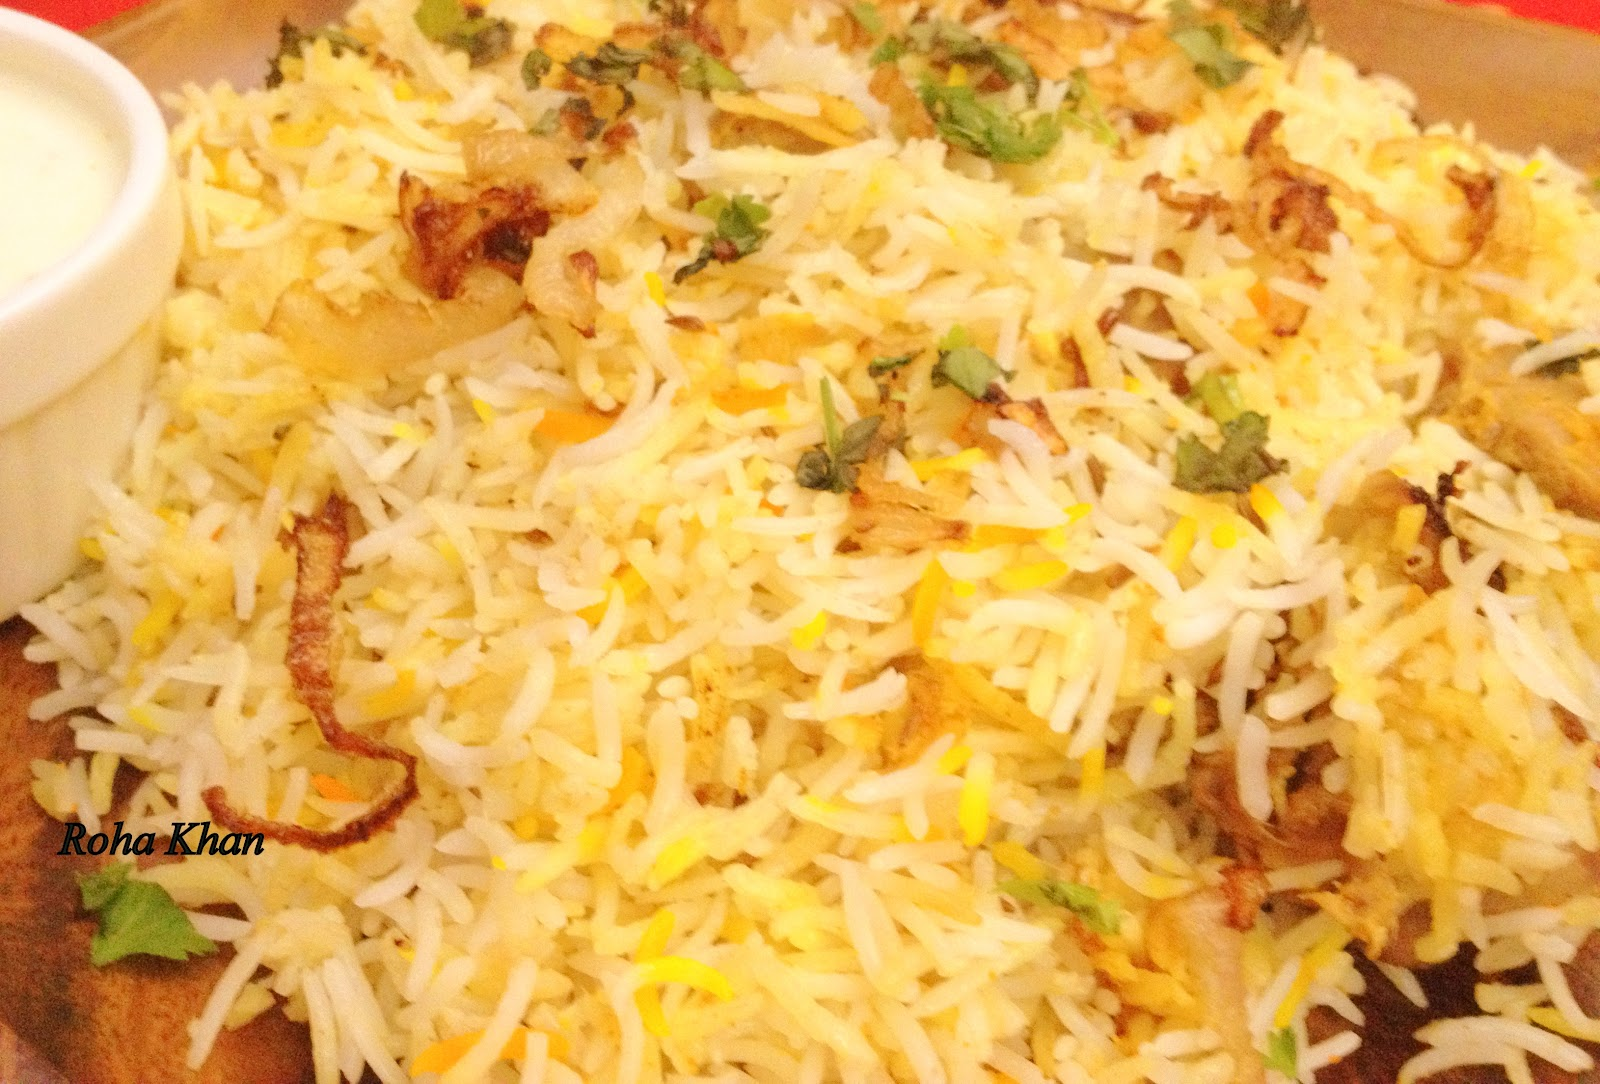 biryani cuisine Want a delicious delivery from biryani kabab cuisine in dallas order your favorite food with uber eats and we'll have it delivered to you in minutes.